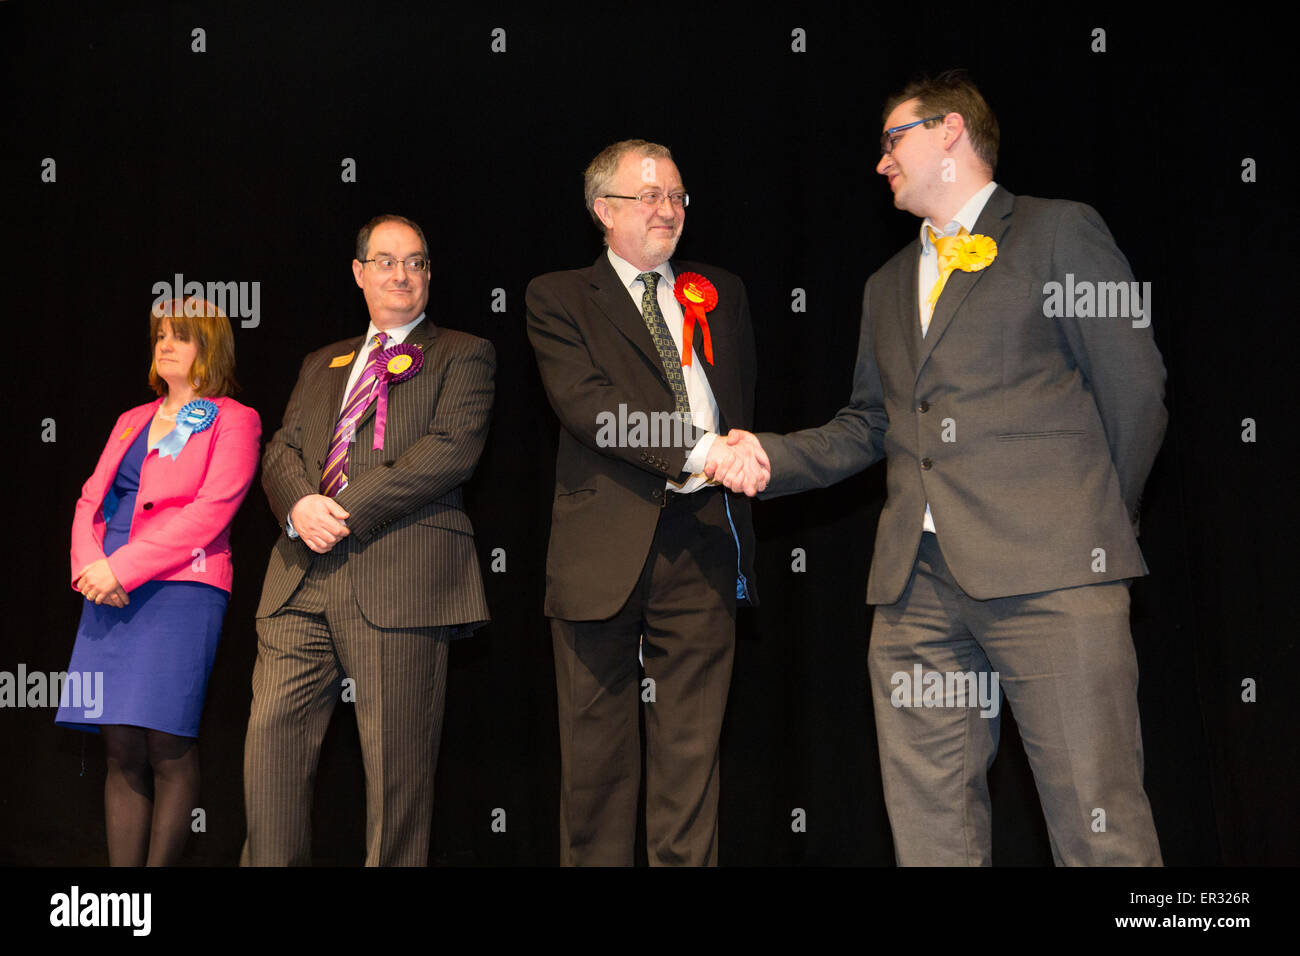 dbcc1e5d1 Richard Burden, third from left, Member of Parliament for Birmingham  Northfield being re-